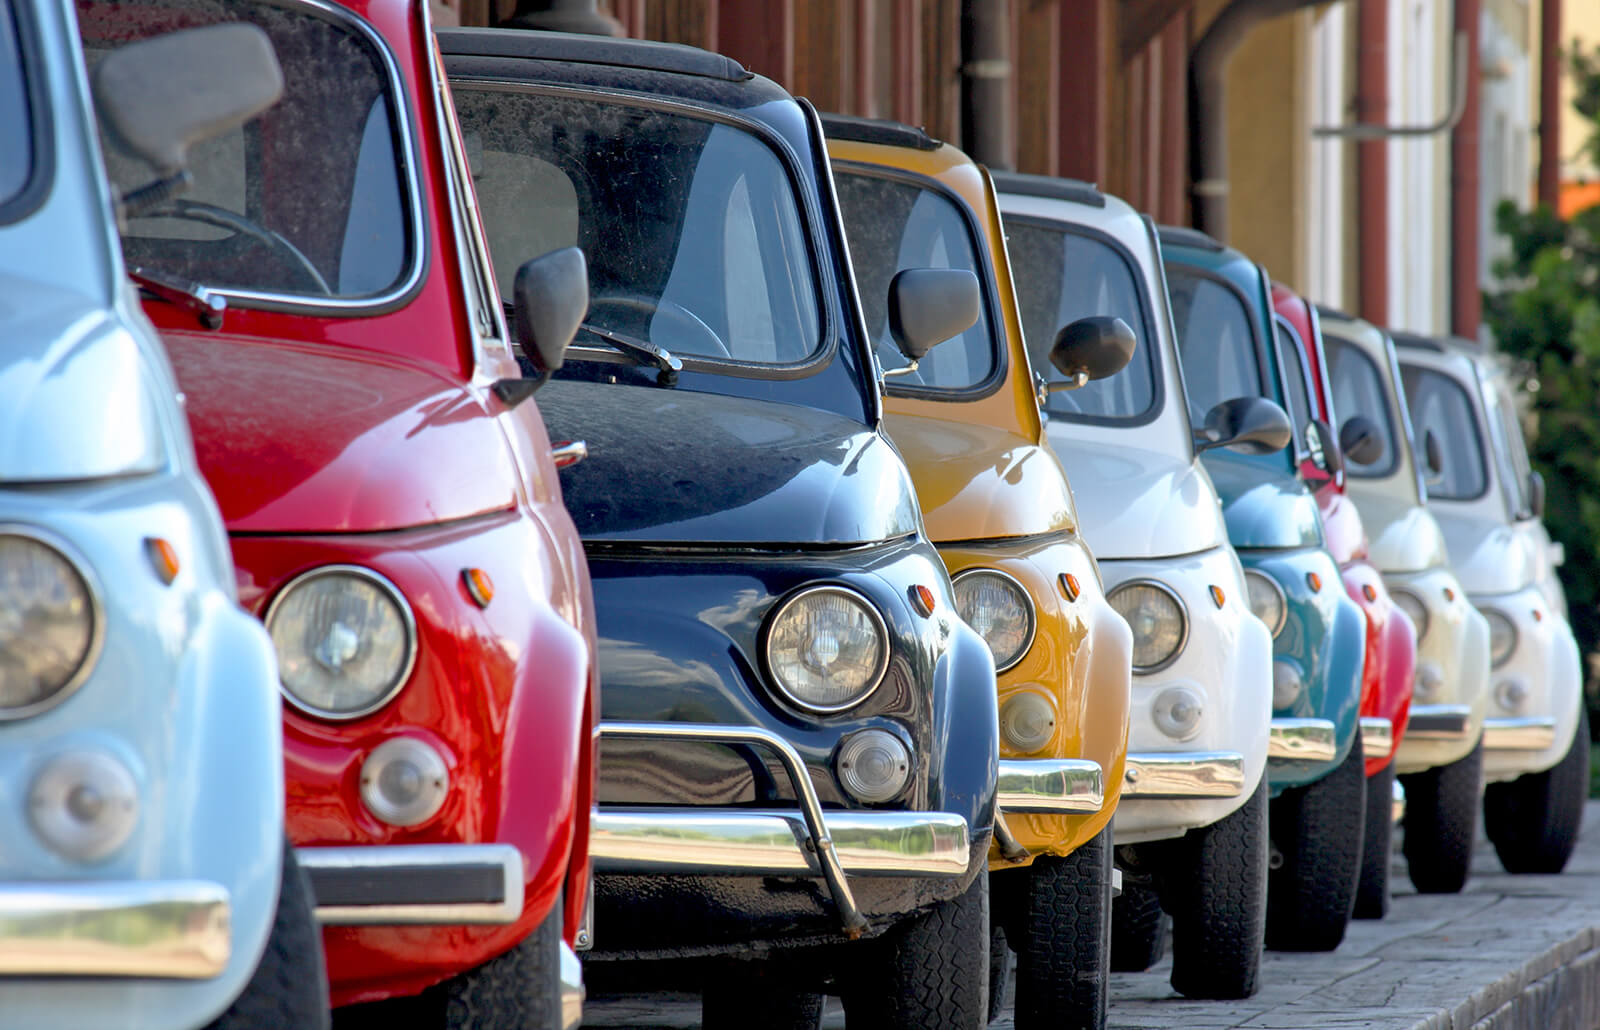 Paint Colors For Cars >> Choosing A Car Paint Color You Ll Love Lovetoknow